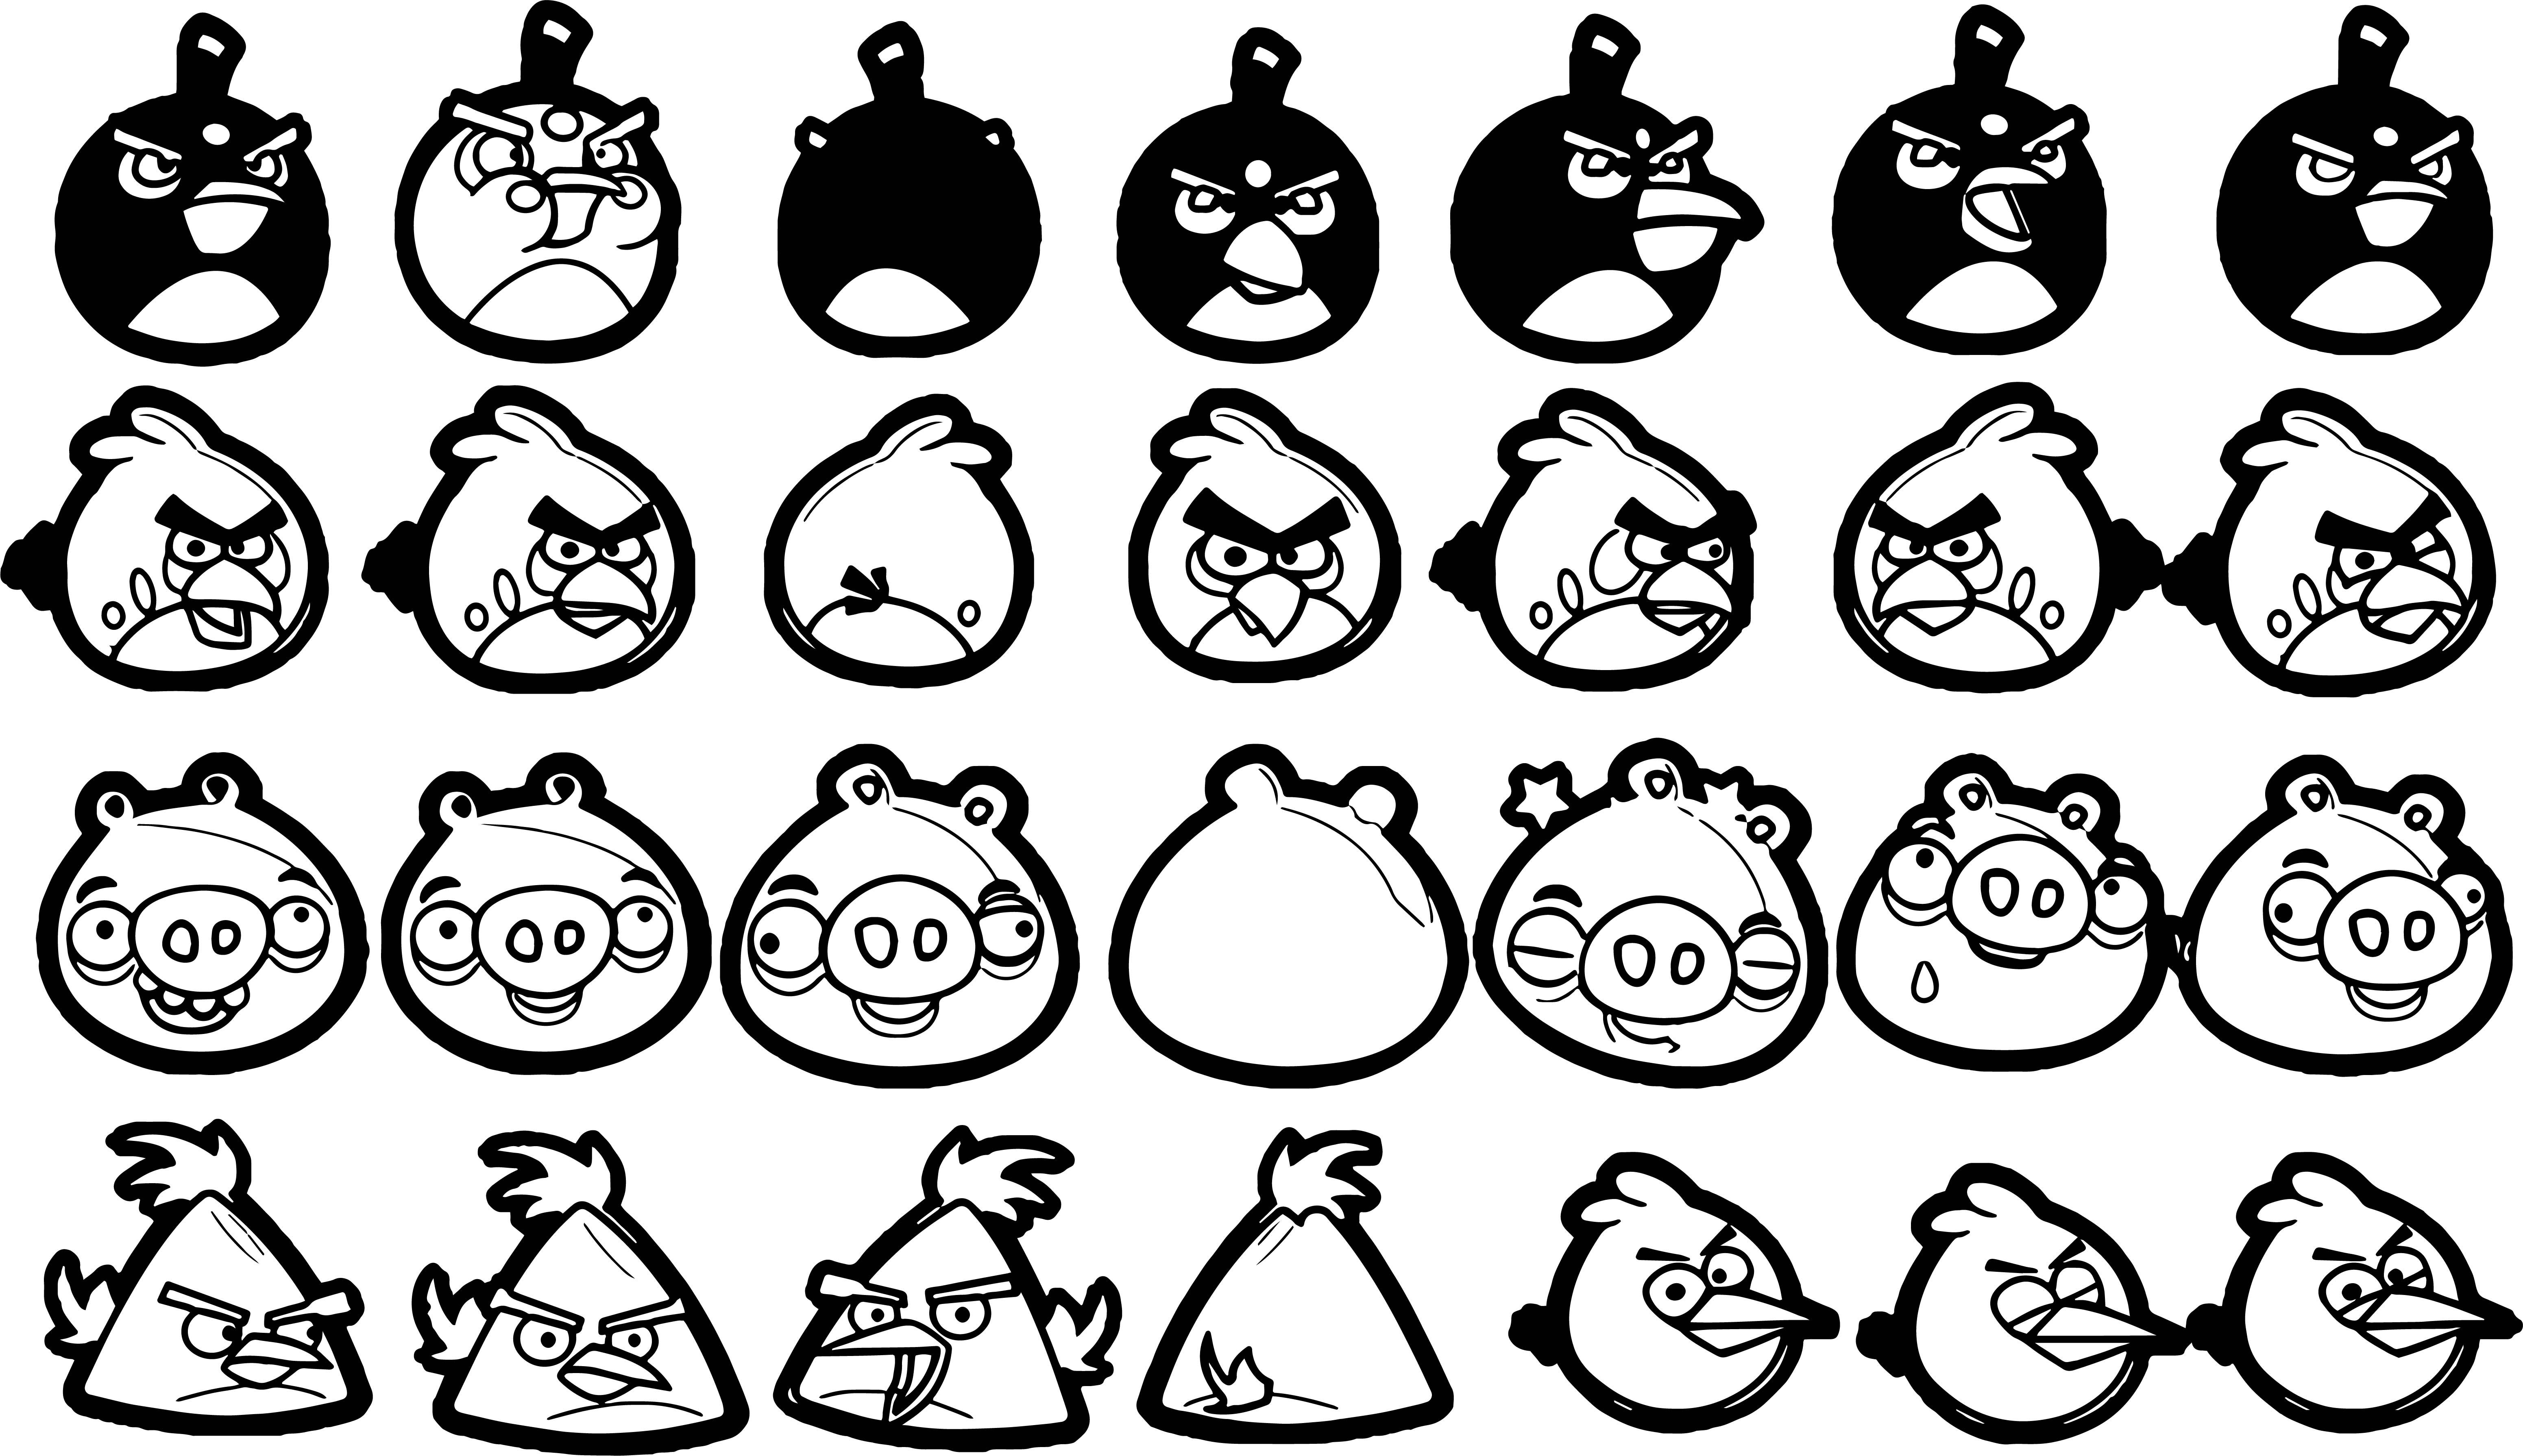 Cool Angry Bird Characters Coloring Page Bird Coloring Pages Kids Printable Coloring Pages Coloring Pages